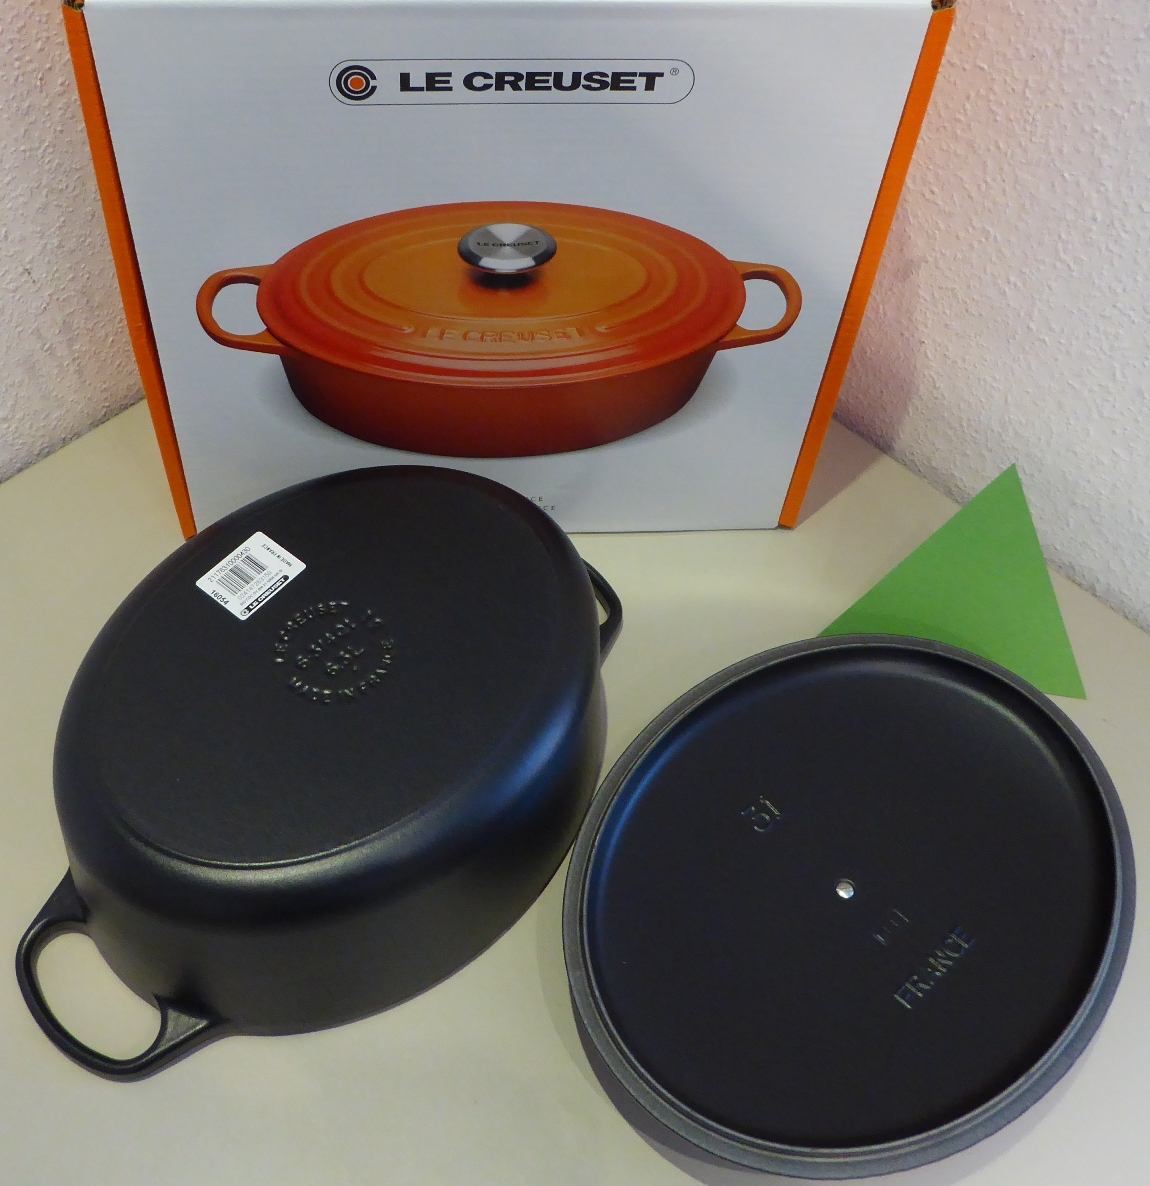 homann schenken kochen wohnen le creuset br ter signature 31 cm oval schwarz induktion. Black Bedroom Furniture Sets. Home Design Ideas